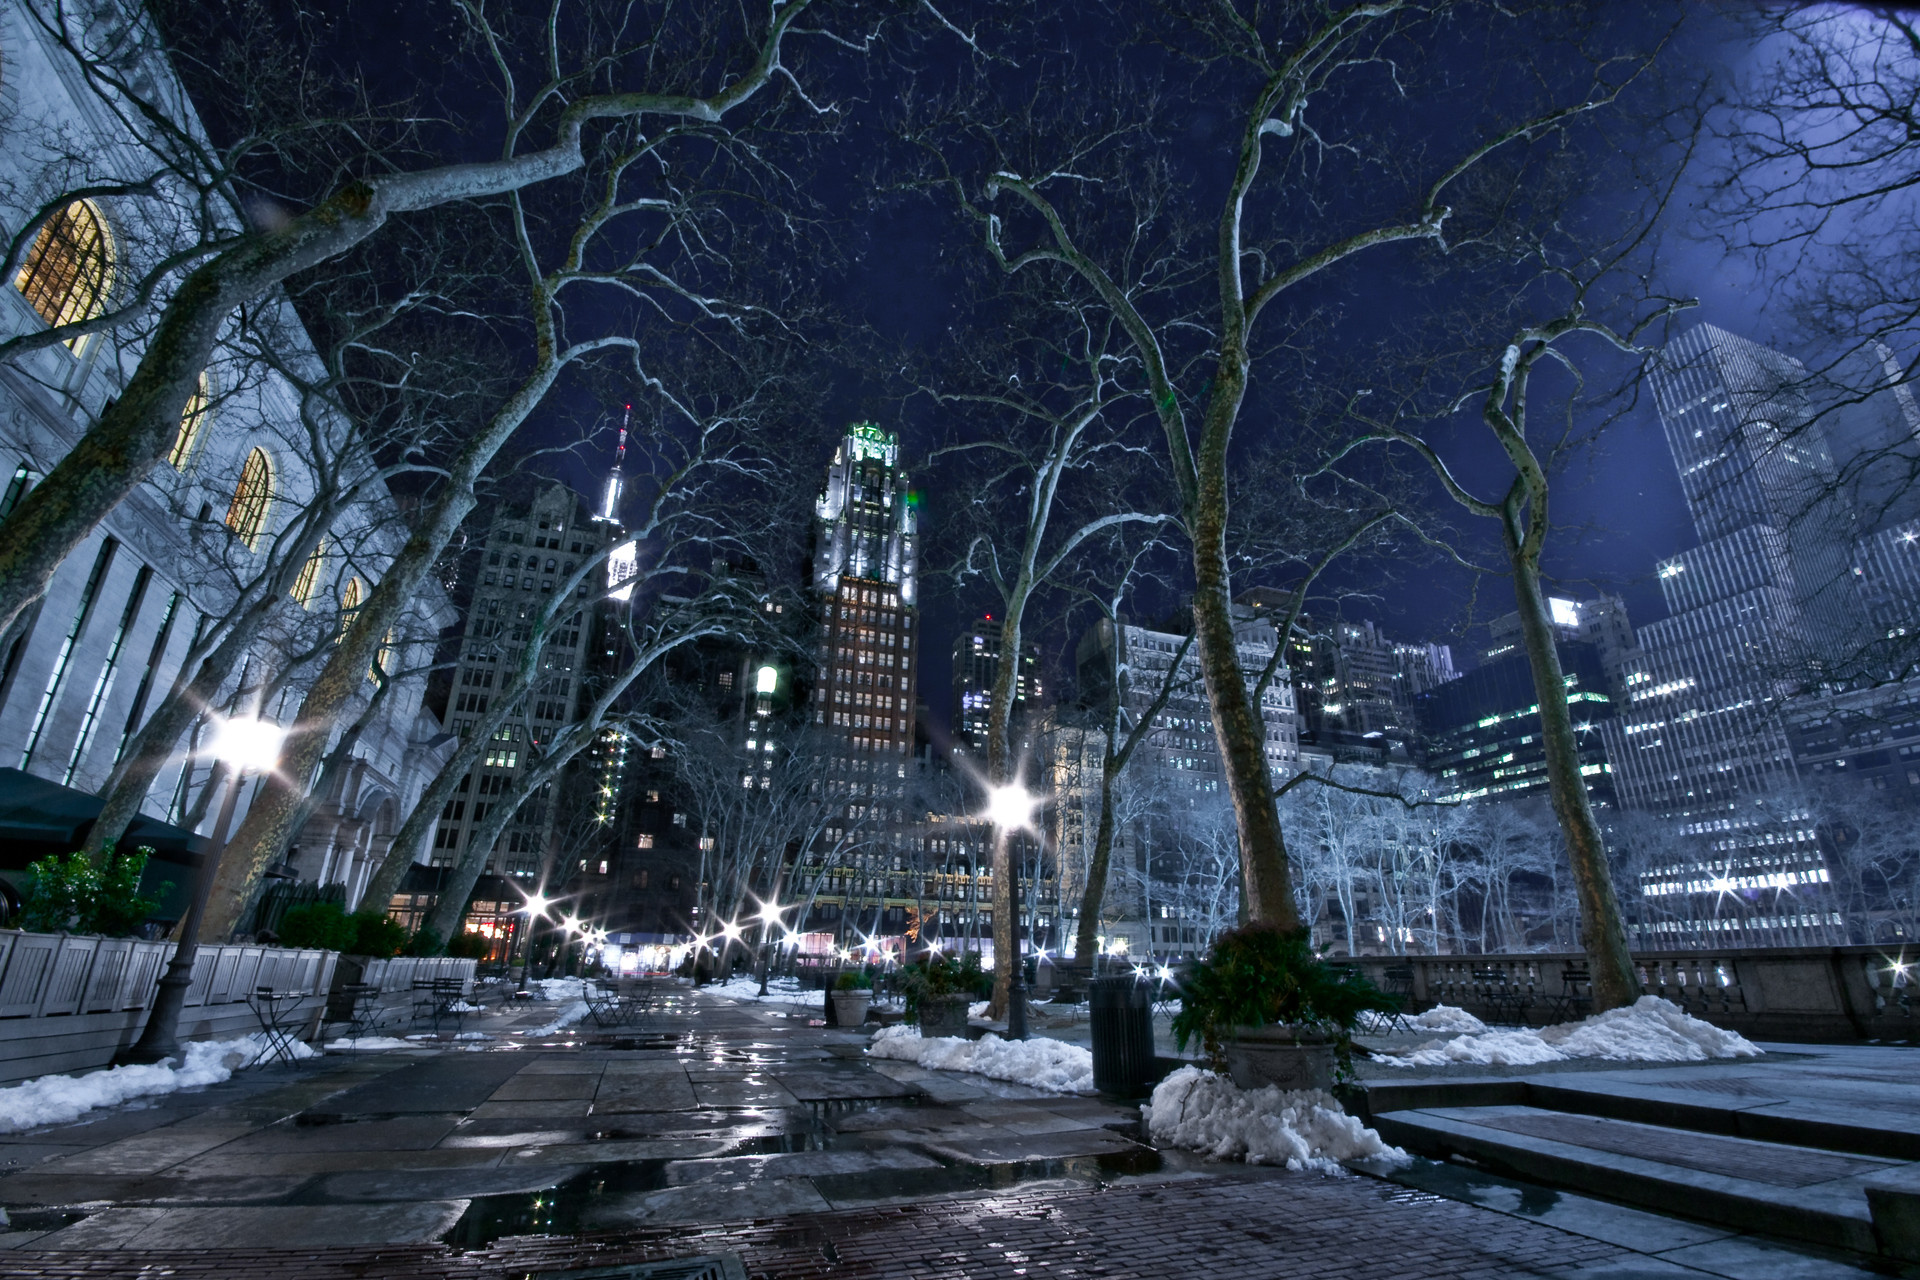 Bryant Park, New York by WilsonAxpe / Scott Wilson – Desktop Wallpaper